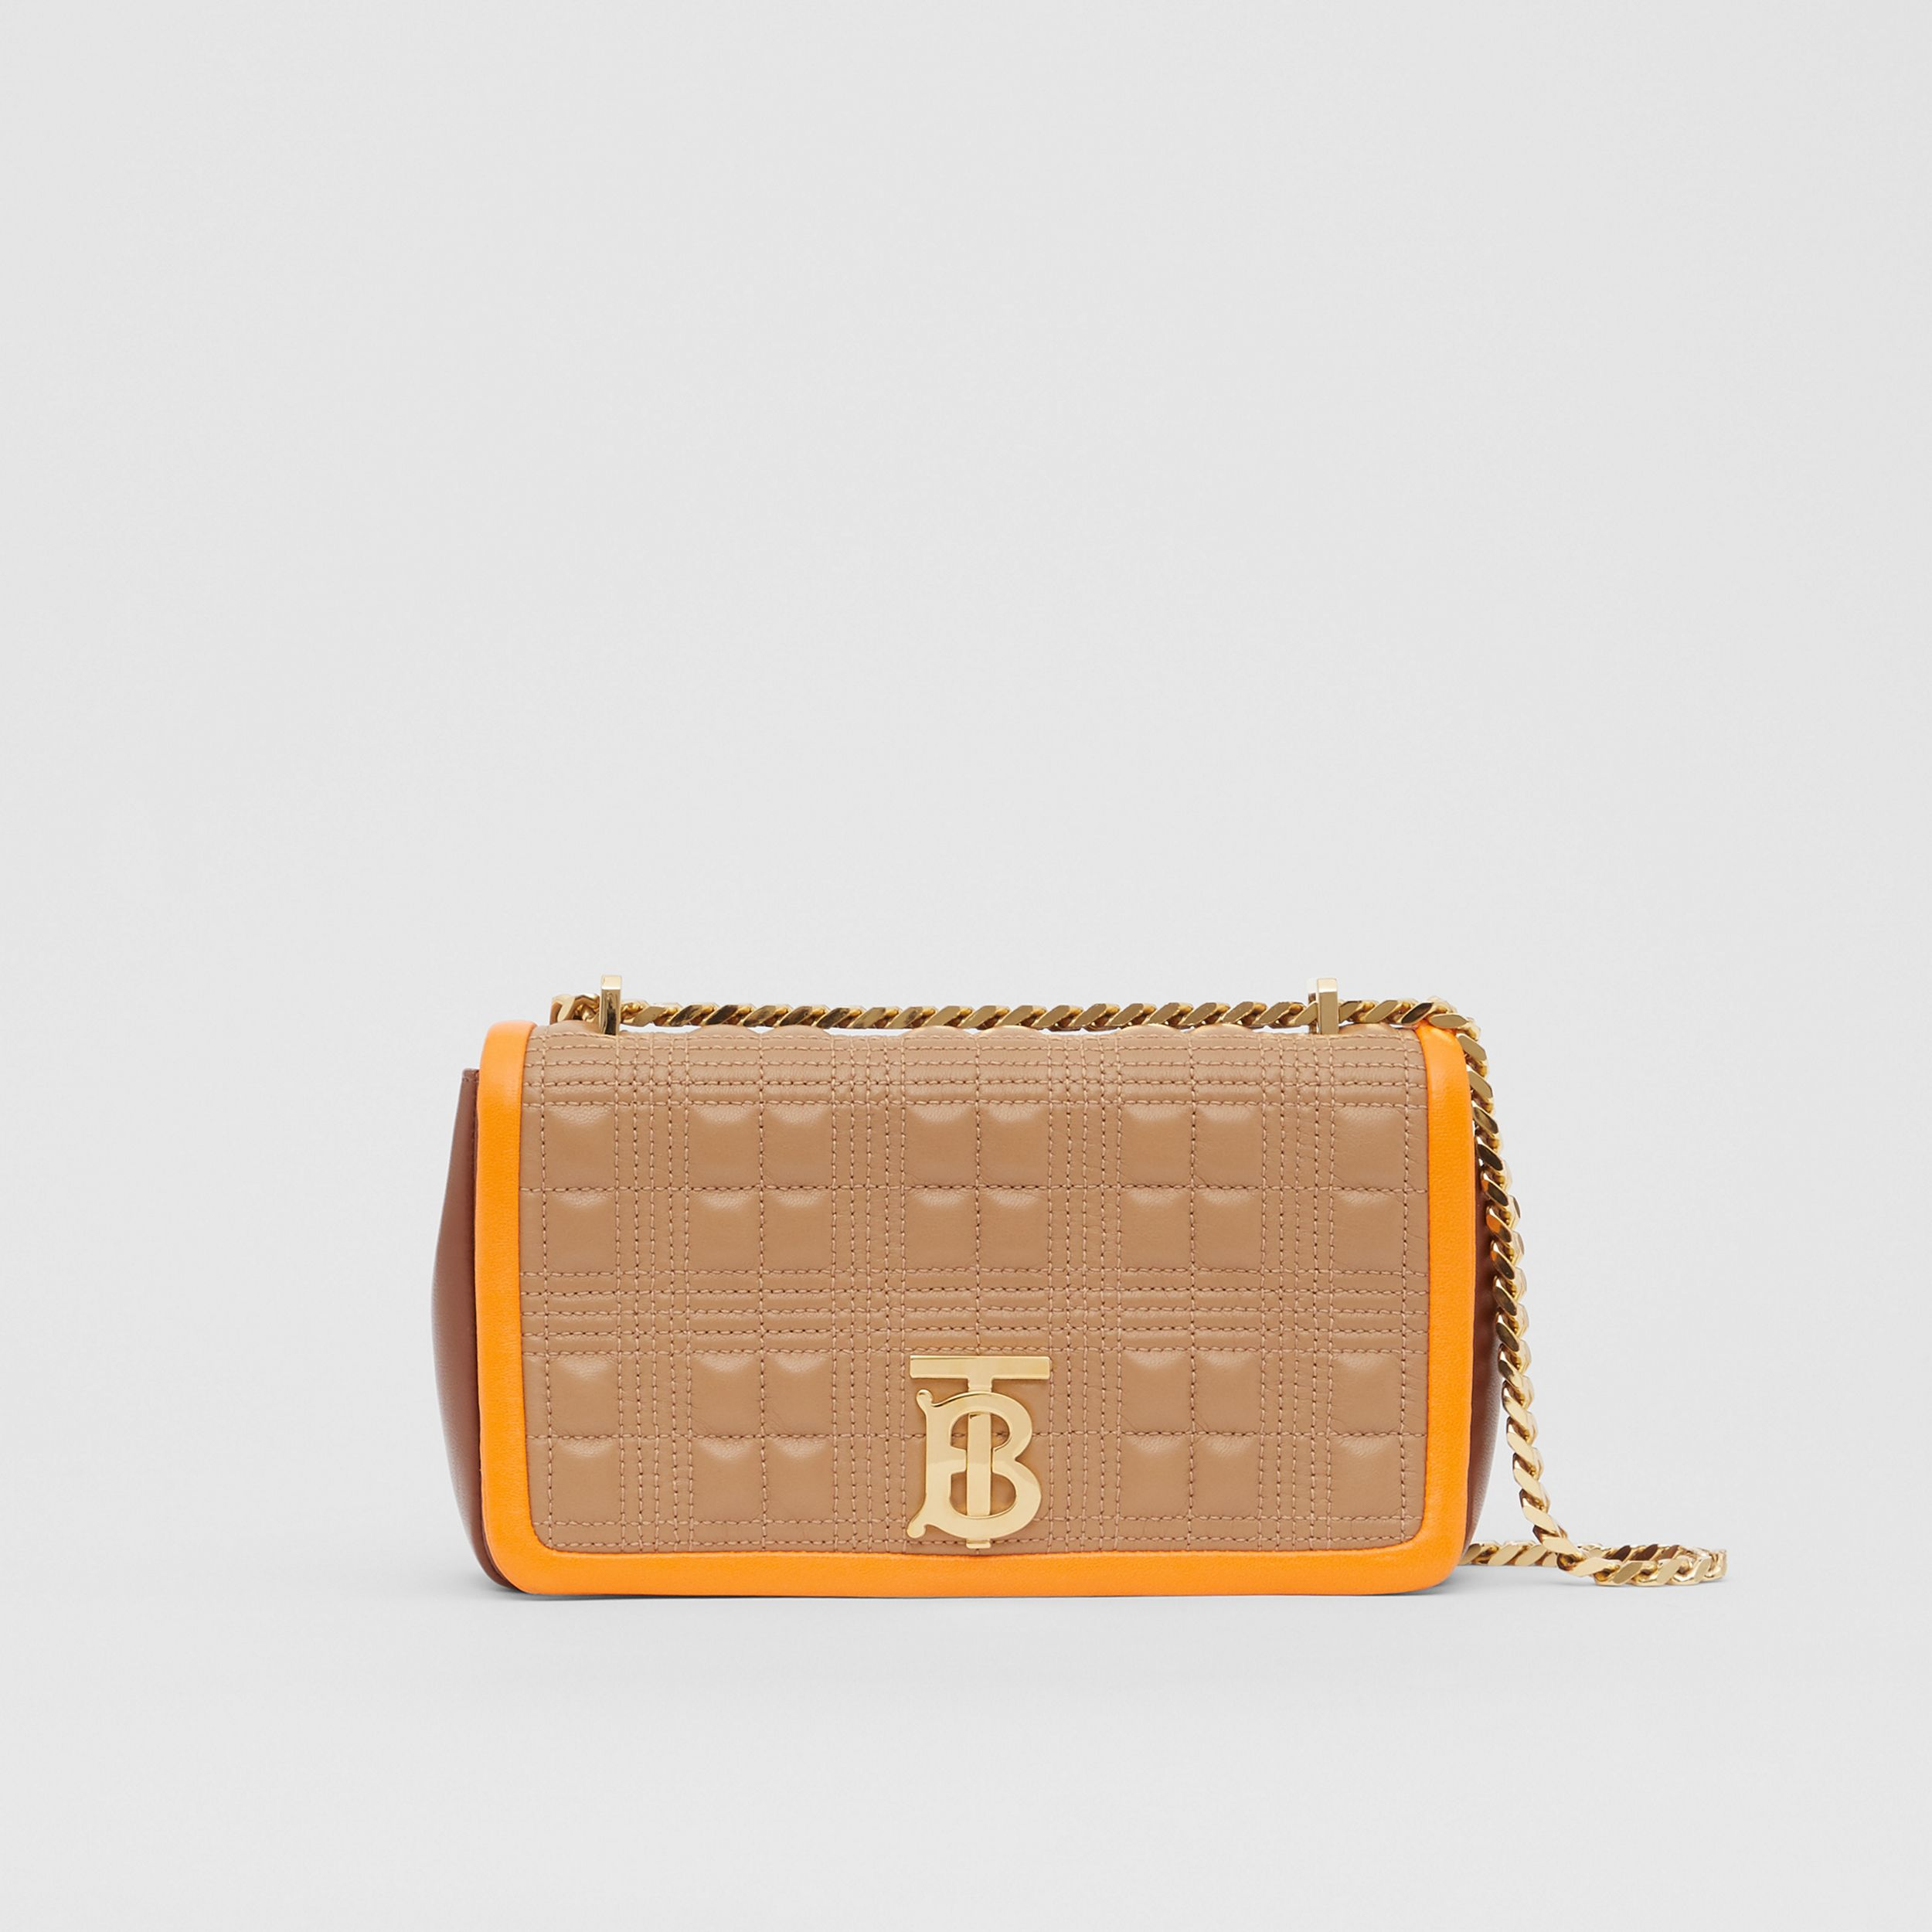 Small Quilted Tri-tone Lambskin Lola Bag in Camel/bright Orange - Women | Burberry - 1